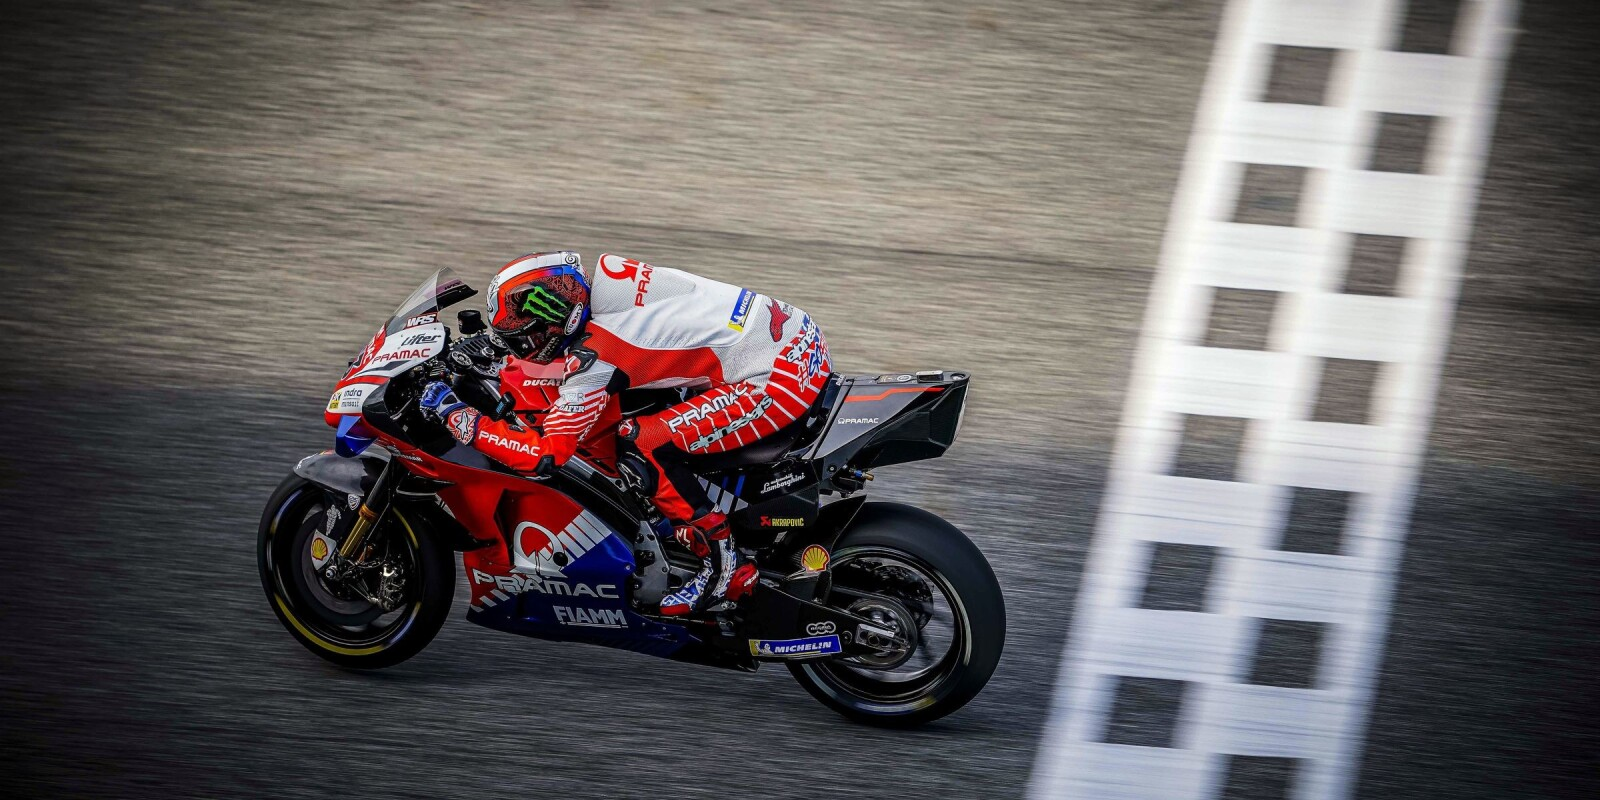 Pecco Bagnaia at the 2019 Grand Prix of the Thailand